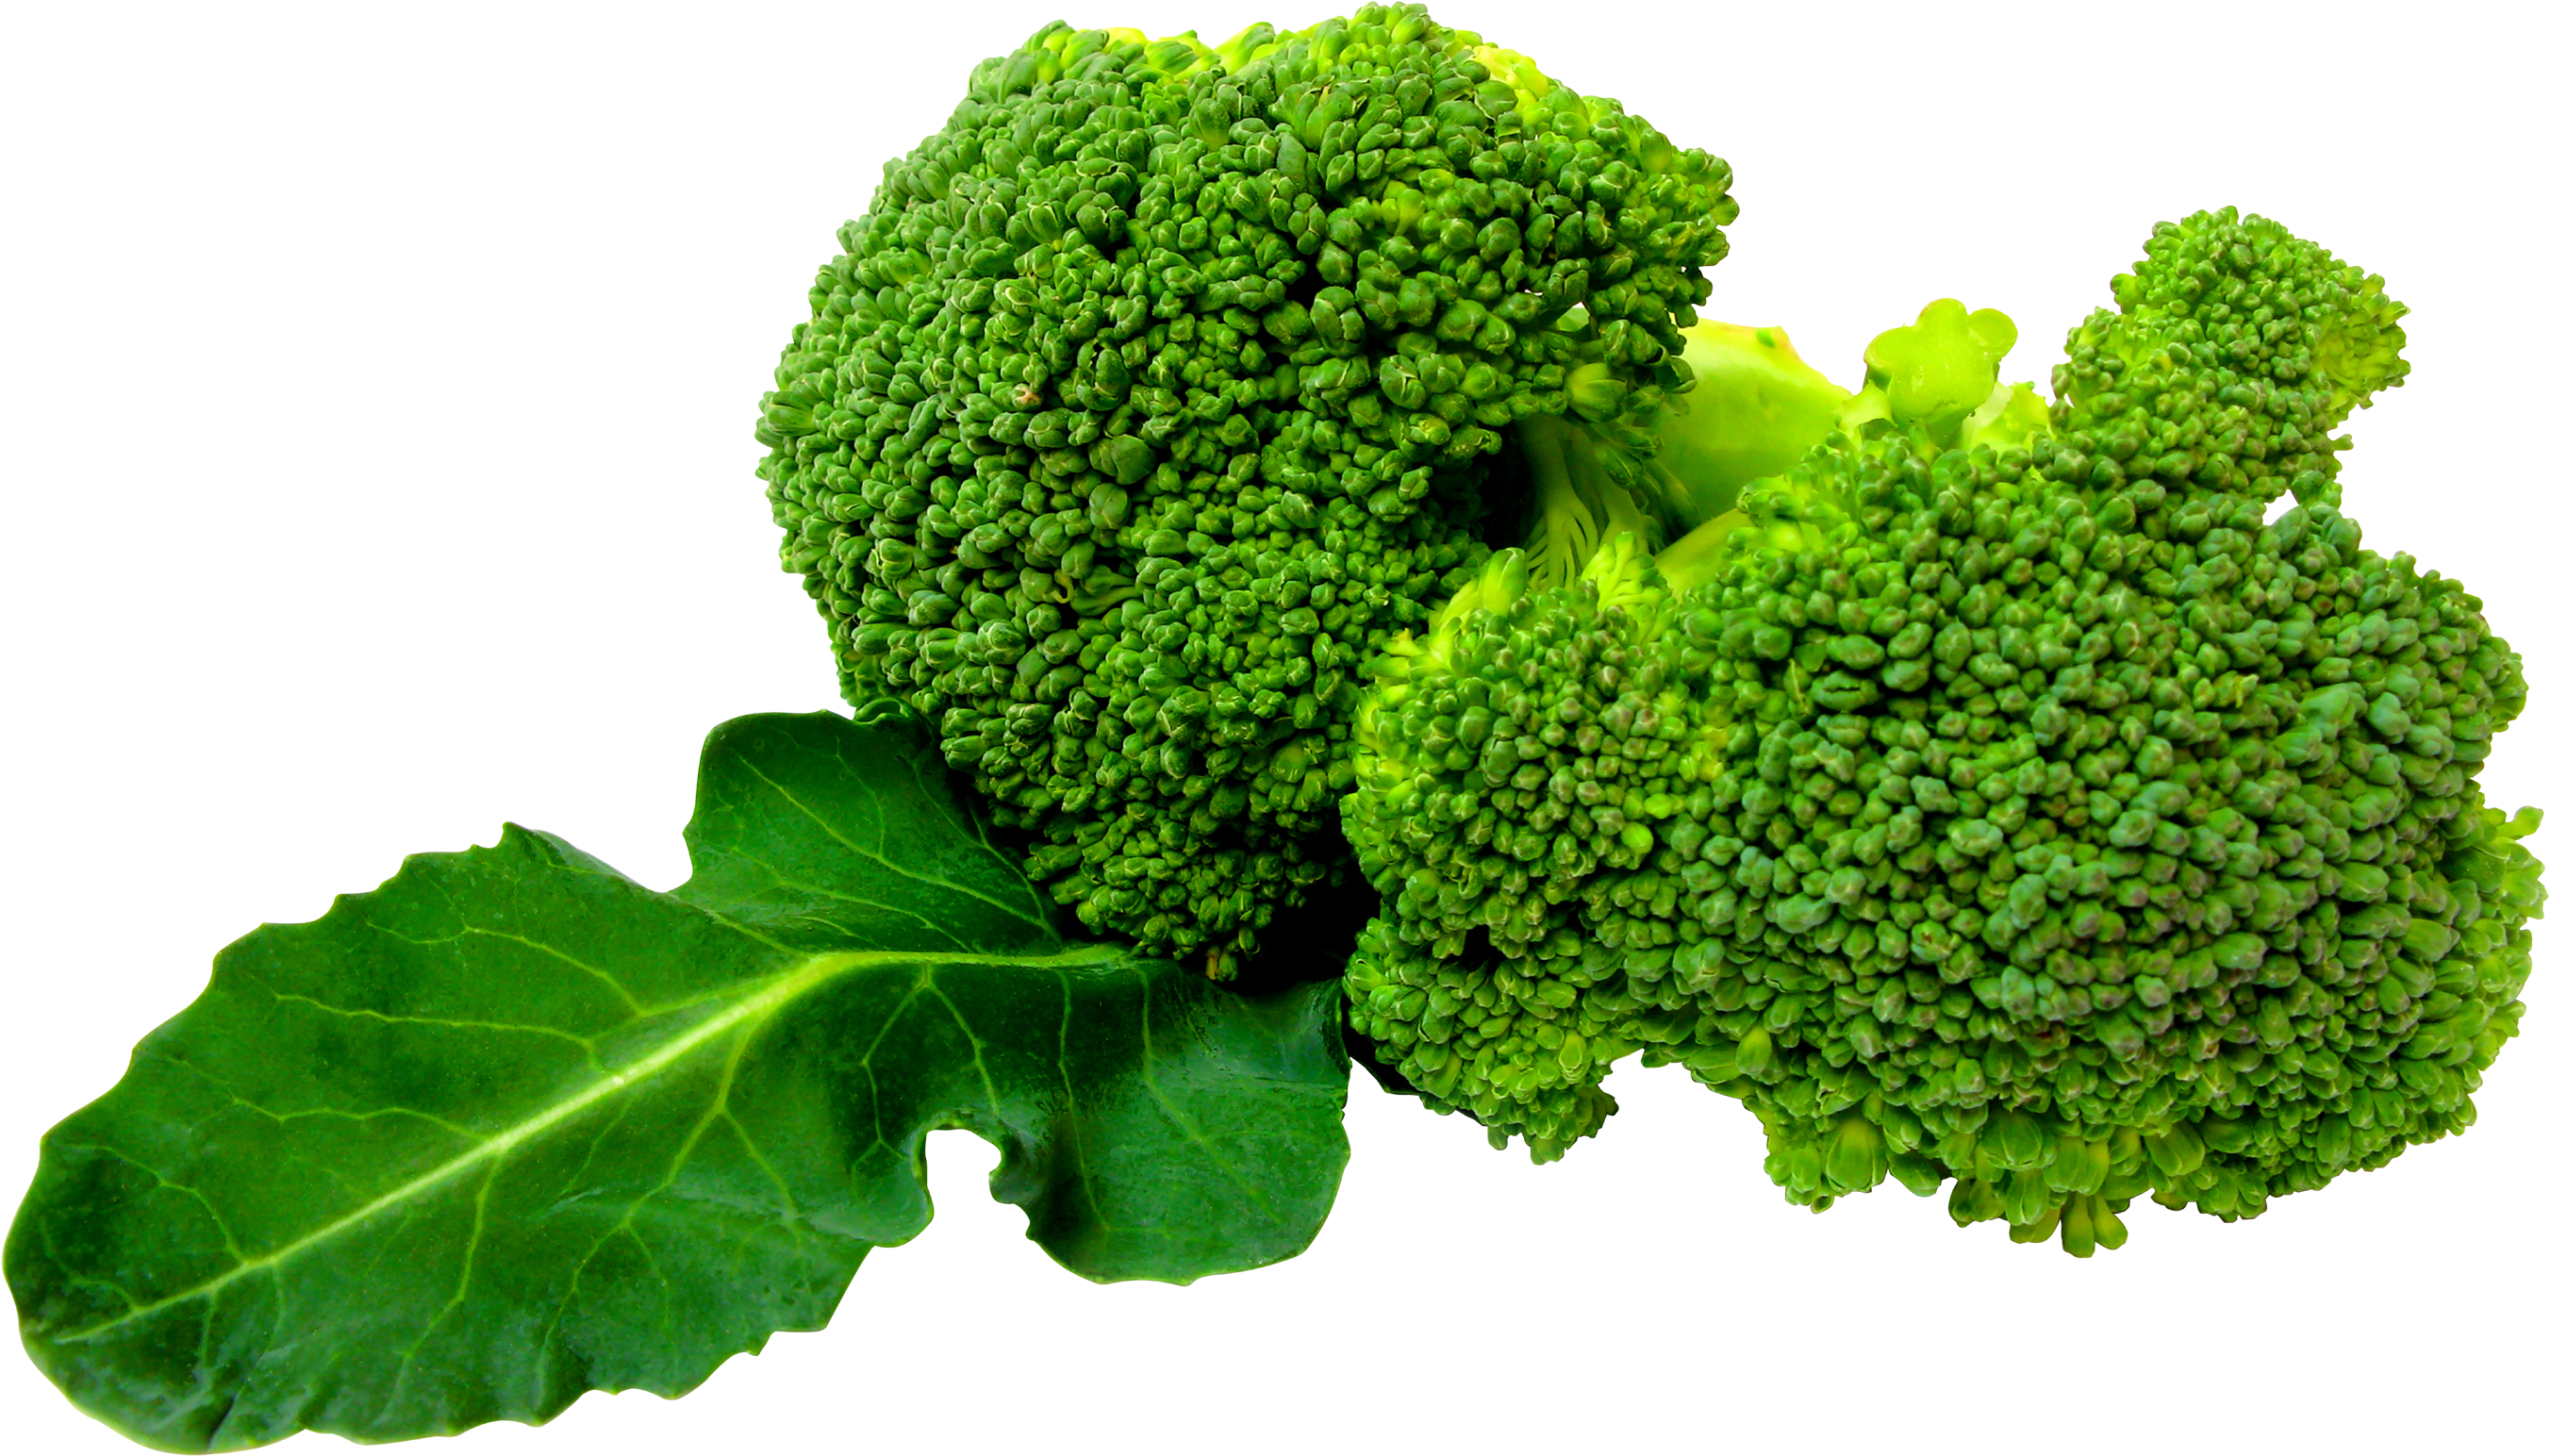 Clipart vegetables vege. Broccoli png image free